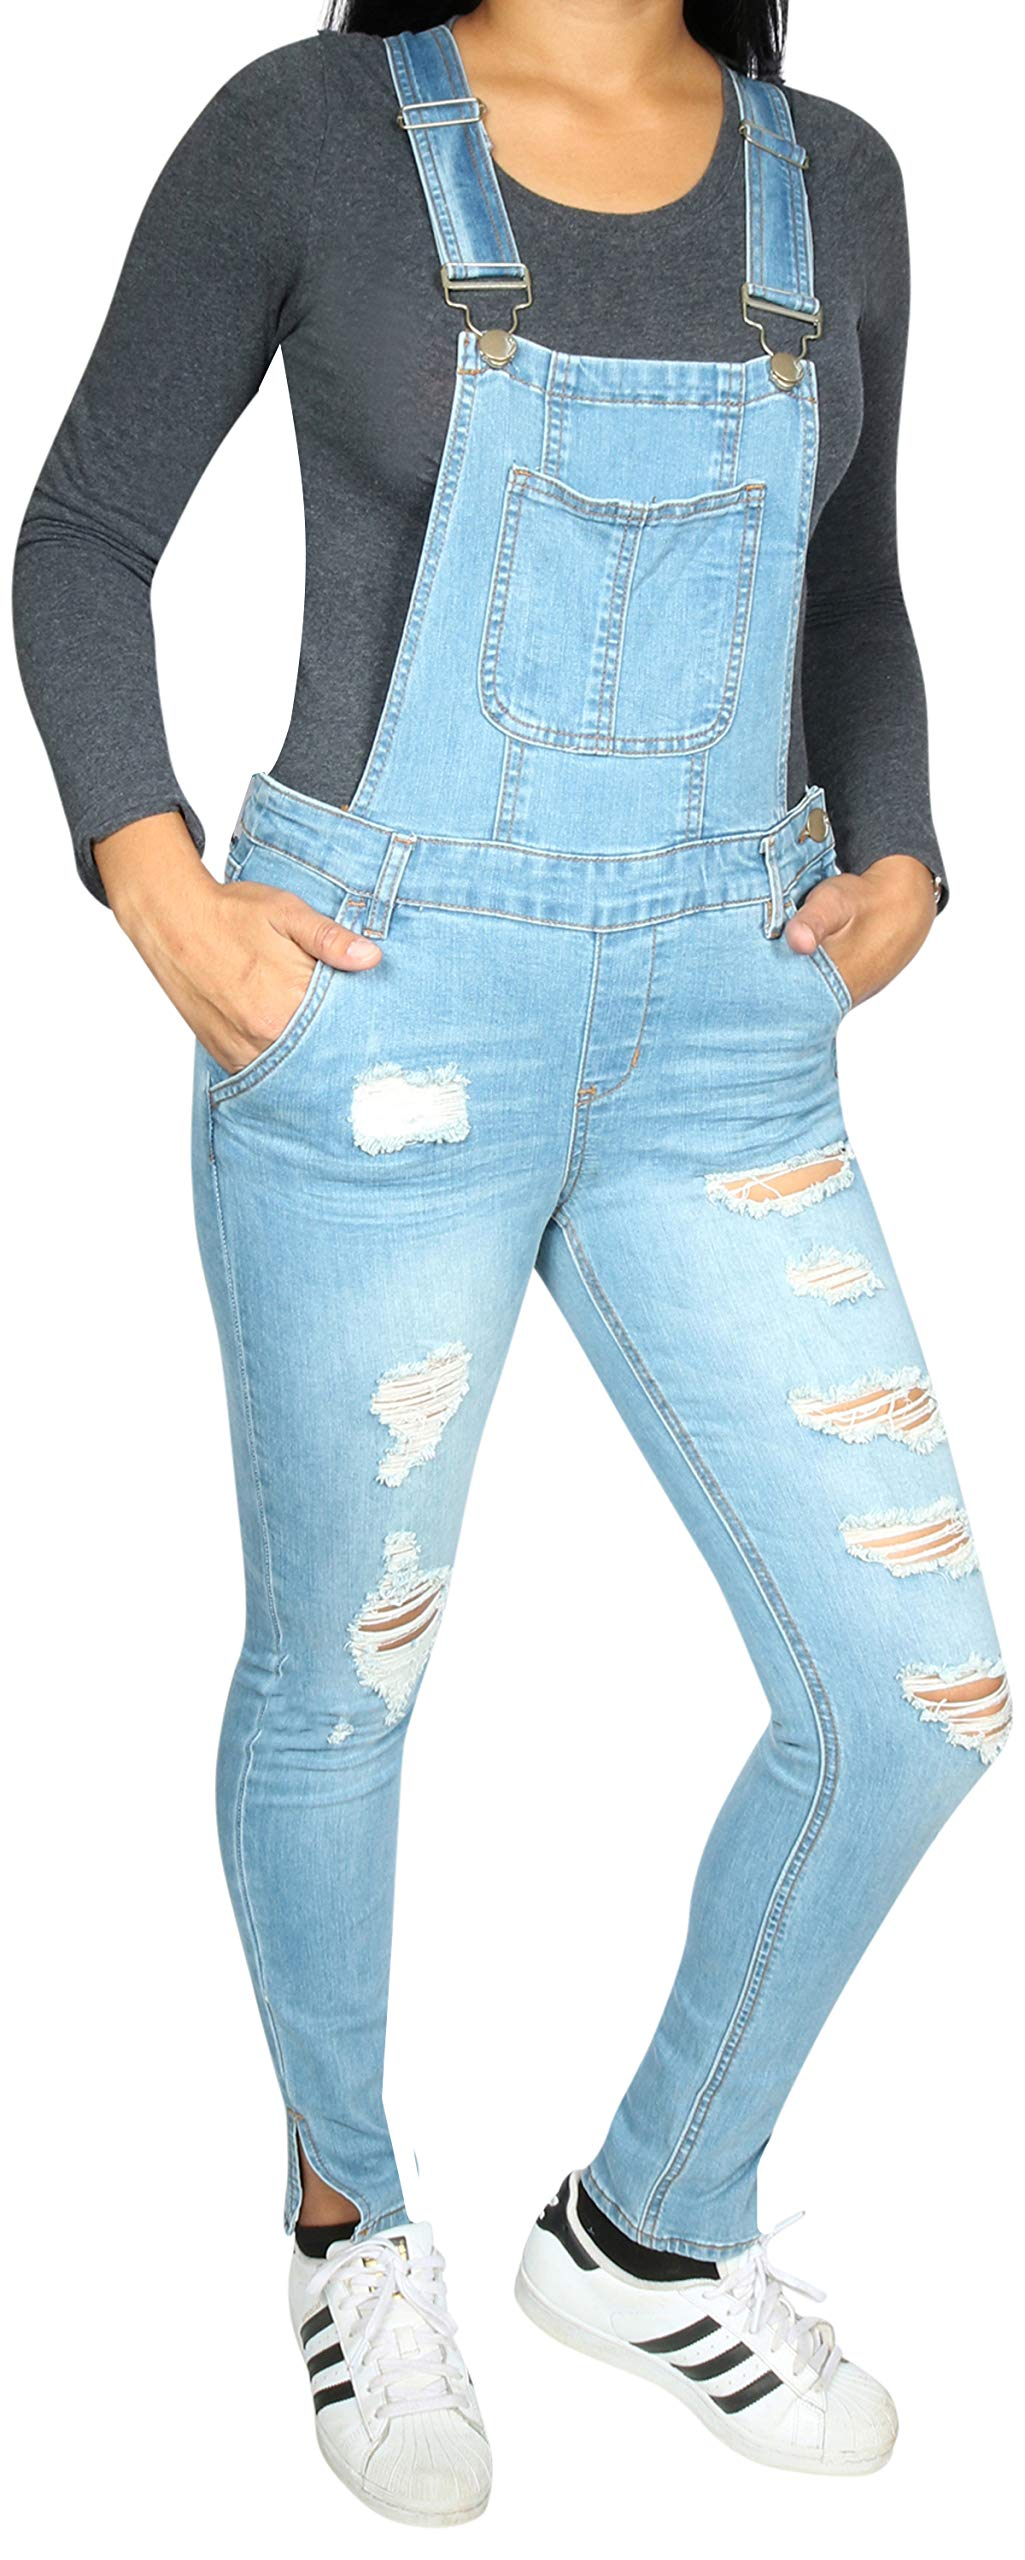 dollhouse Women's Skinny Denim Destructed Overalls, Medium Ankle Slit, Size 22'